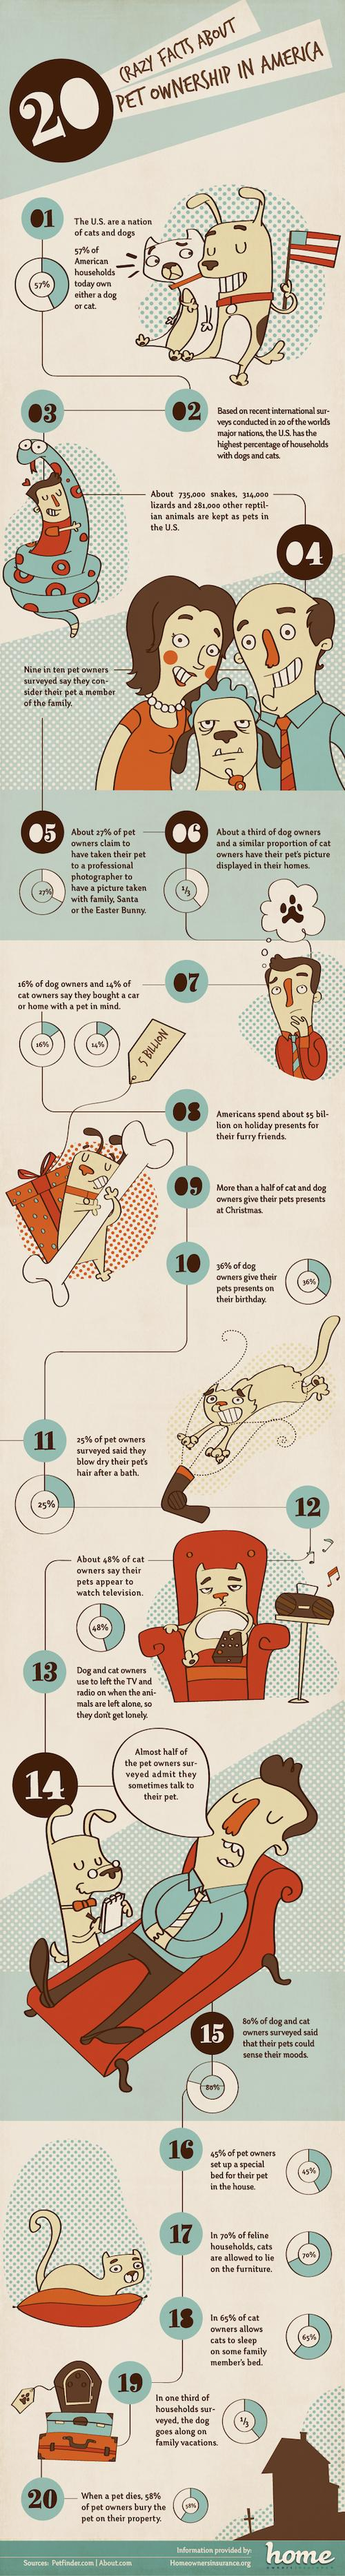 pets-infographic-facts-about-pet-owners.